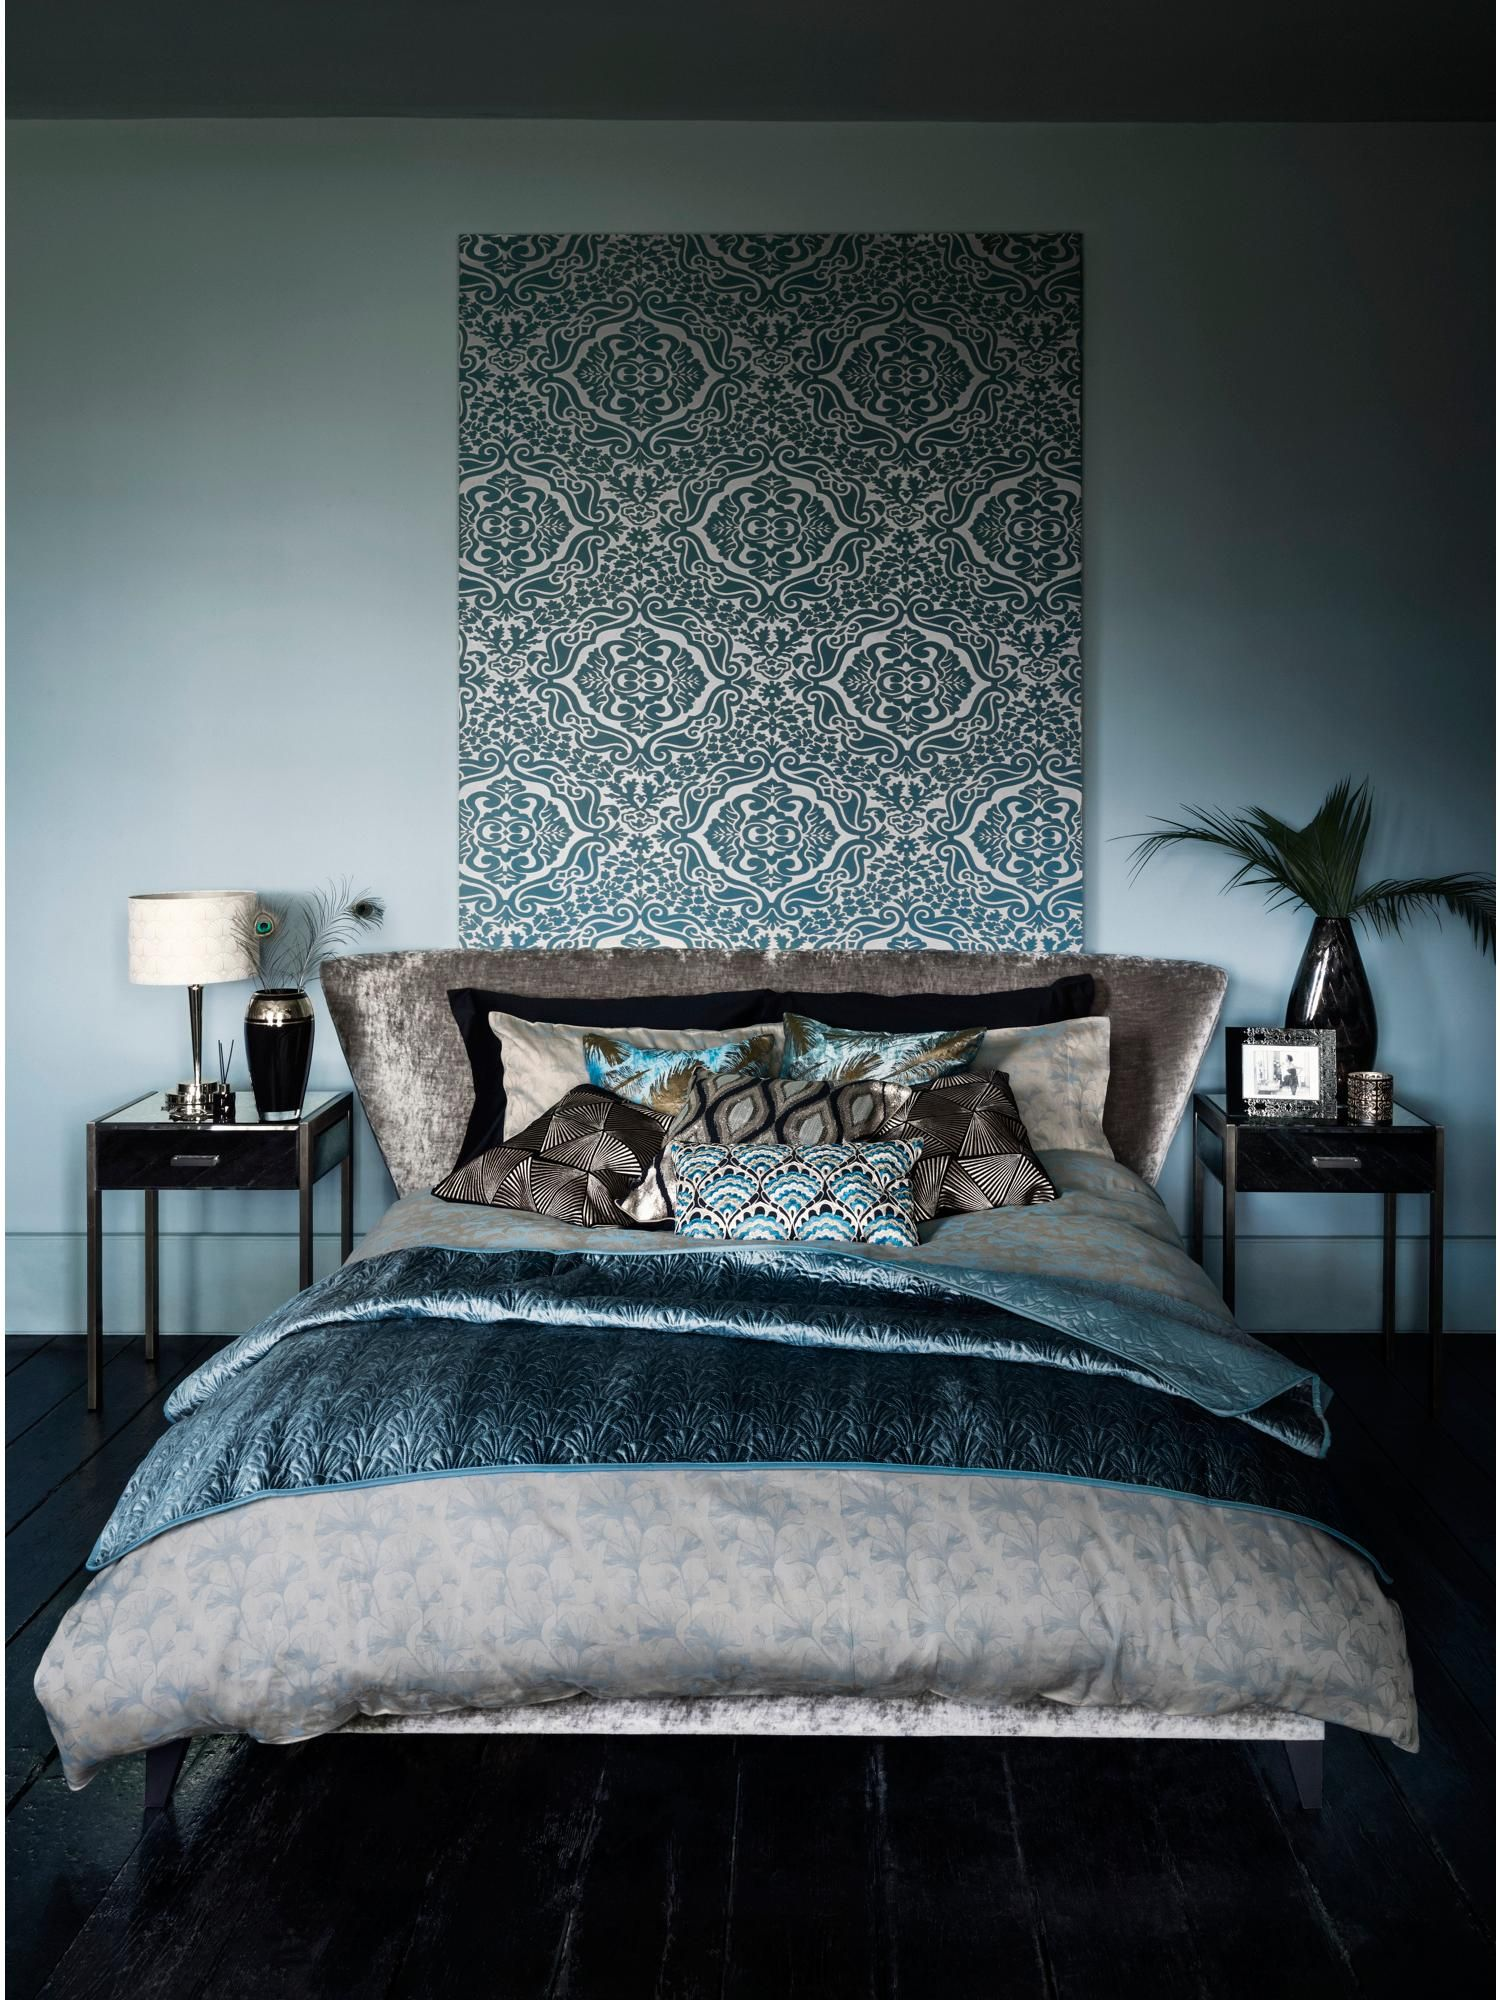 Meubles Fraser Furniture Biba Shell Bedspread Teal House Of Fraser Patz Plays House In